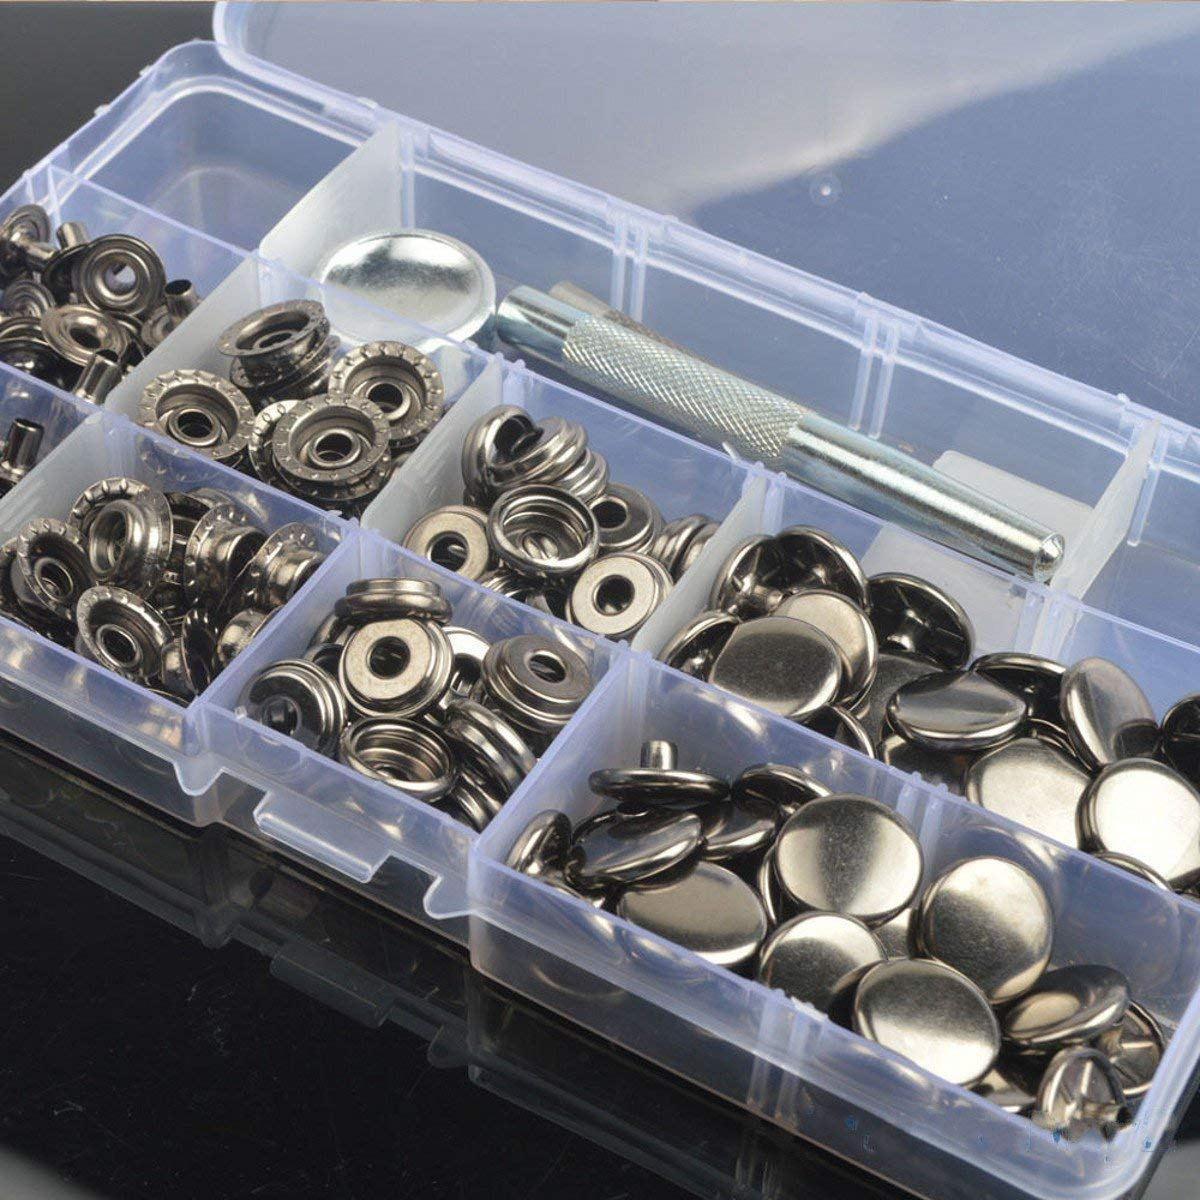 CHENGYIDA 30 Sets 15mm Heavy Duty Silver Snap Fasteners Press Studs Buttons With 201 Setting Tool And Plastic Case